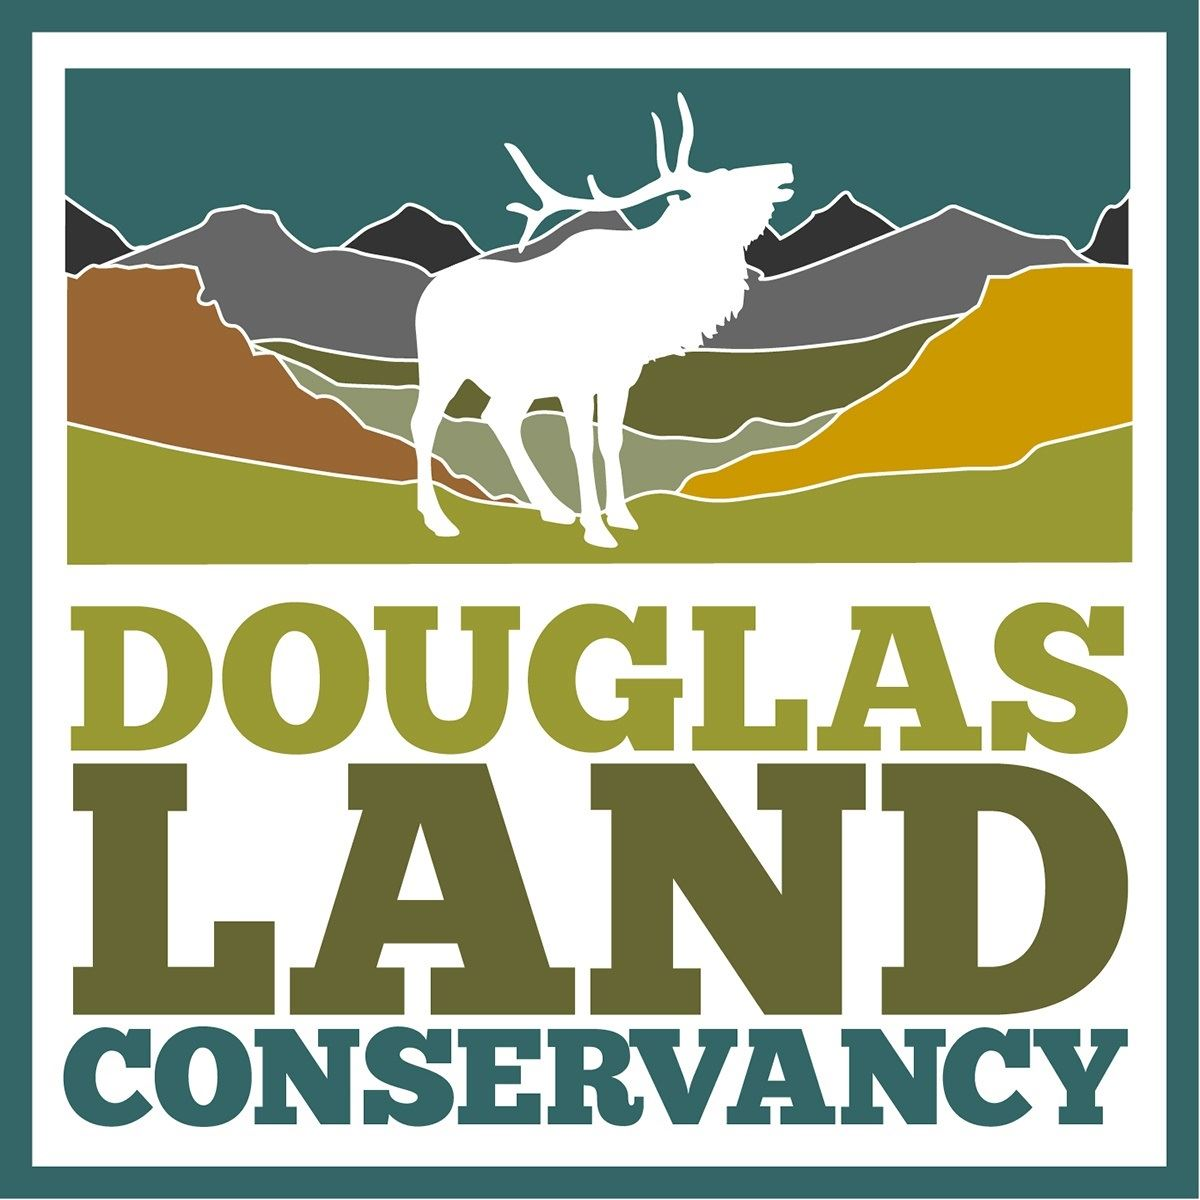 Douglas Land Canservancy-color logo